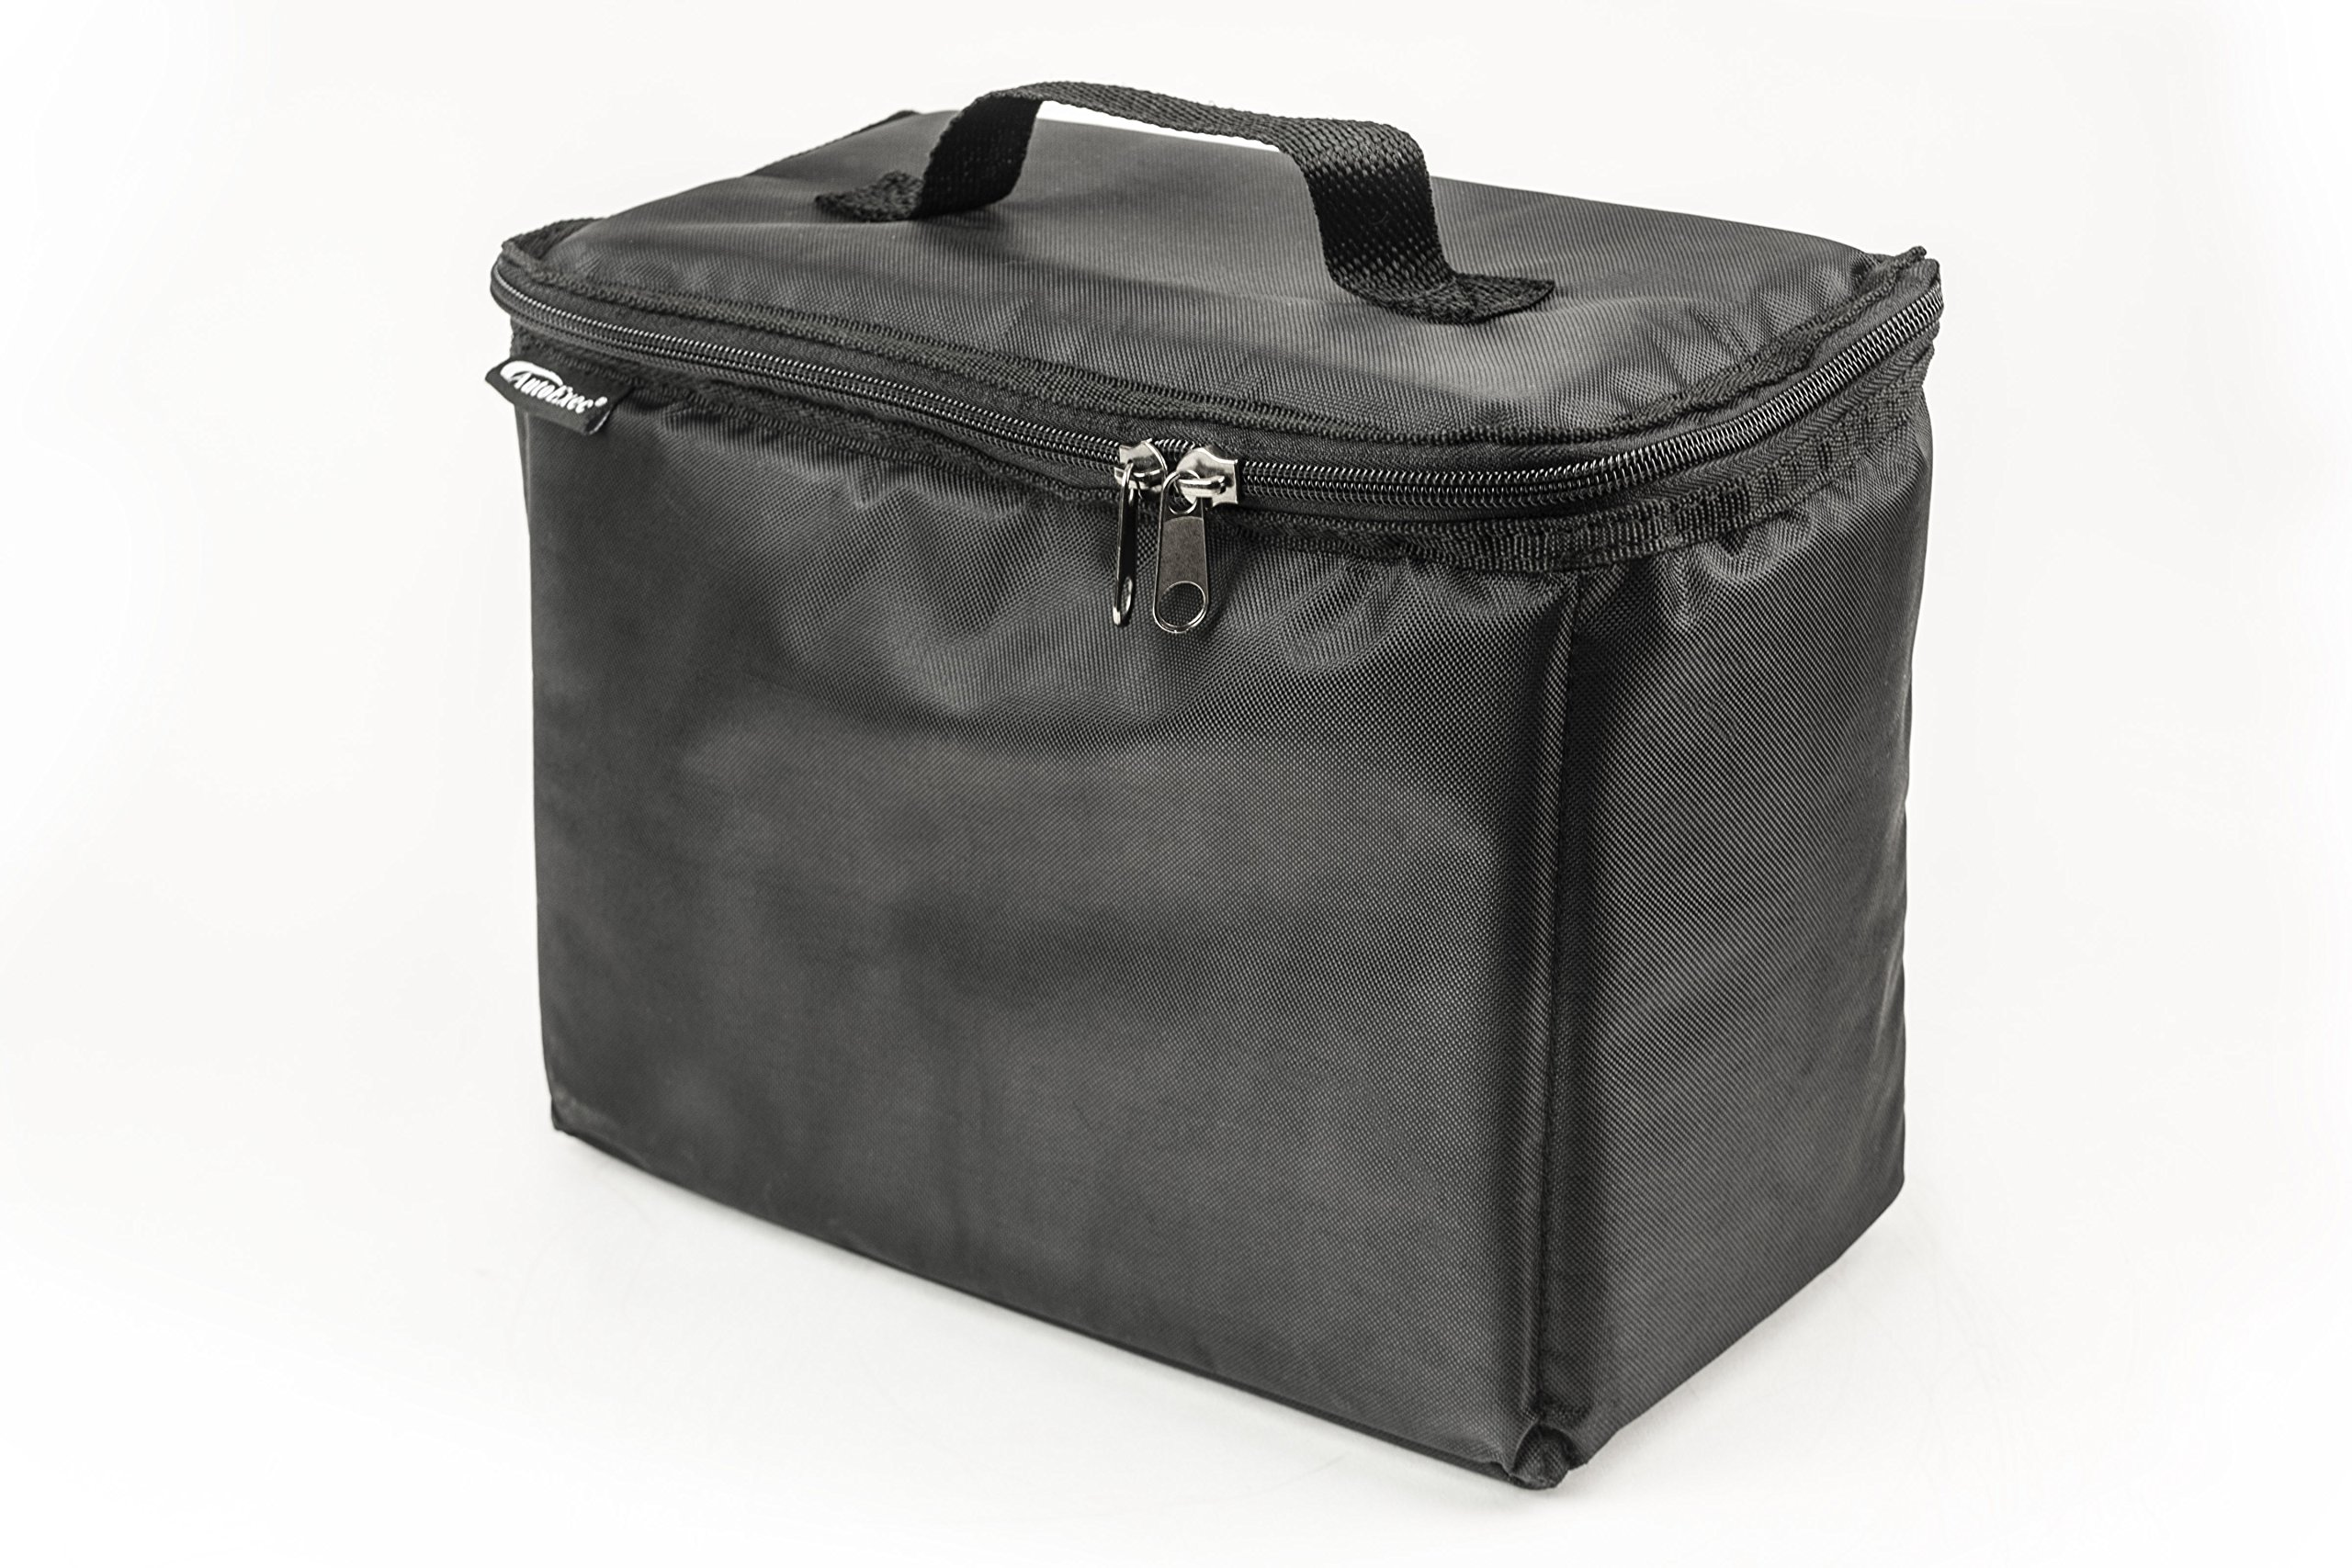 AutoExec AETote-08 Black/Grey File Tote with One Cooler and One Hanging File Holder by AutoExec (Image #2)